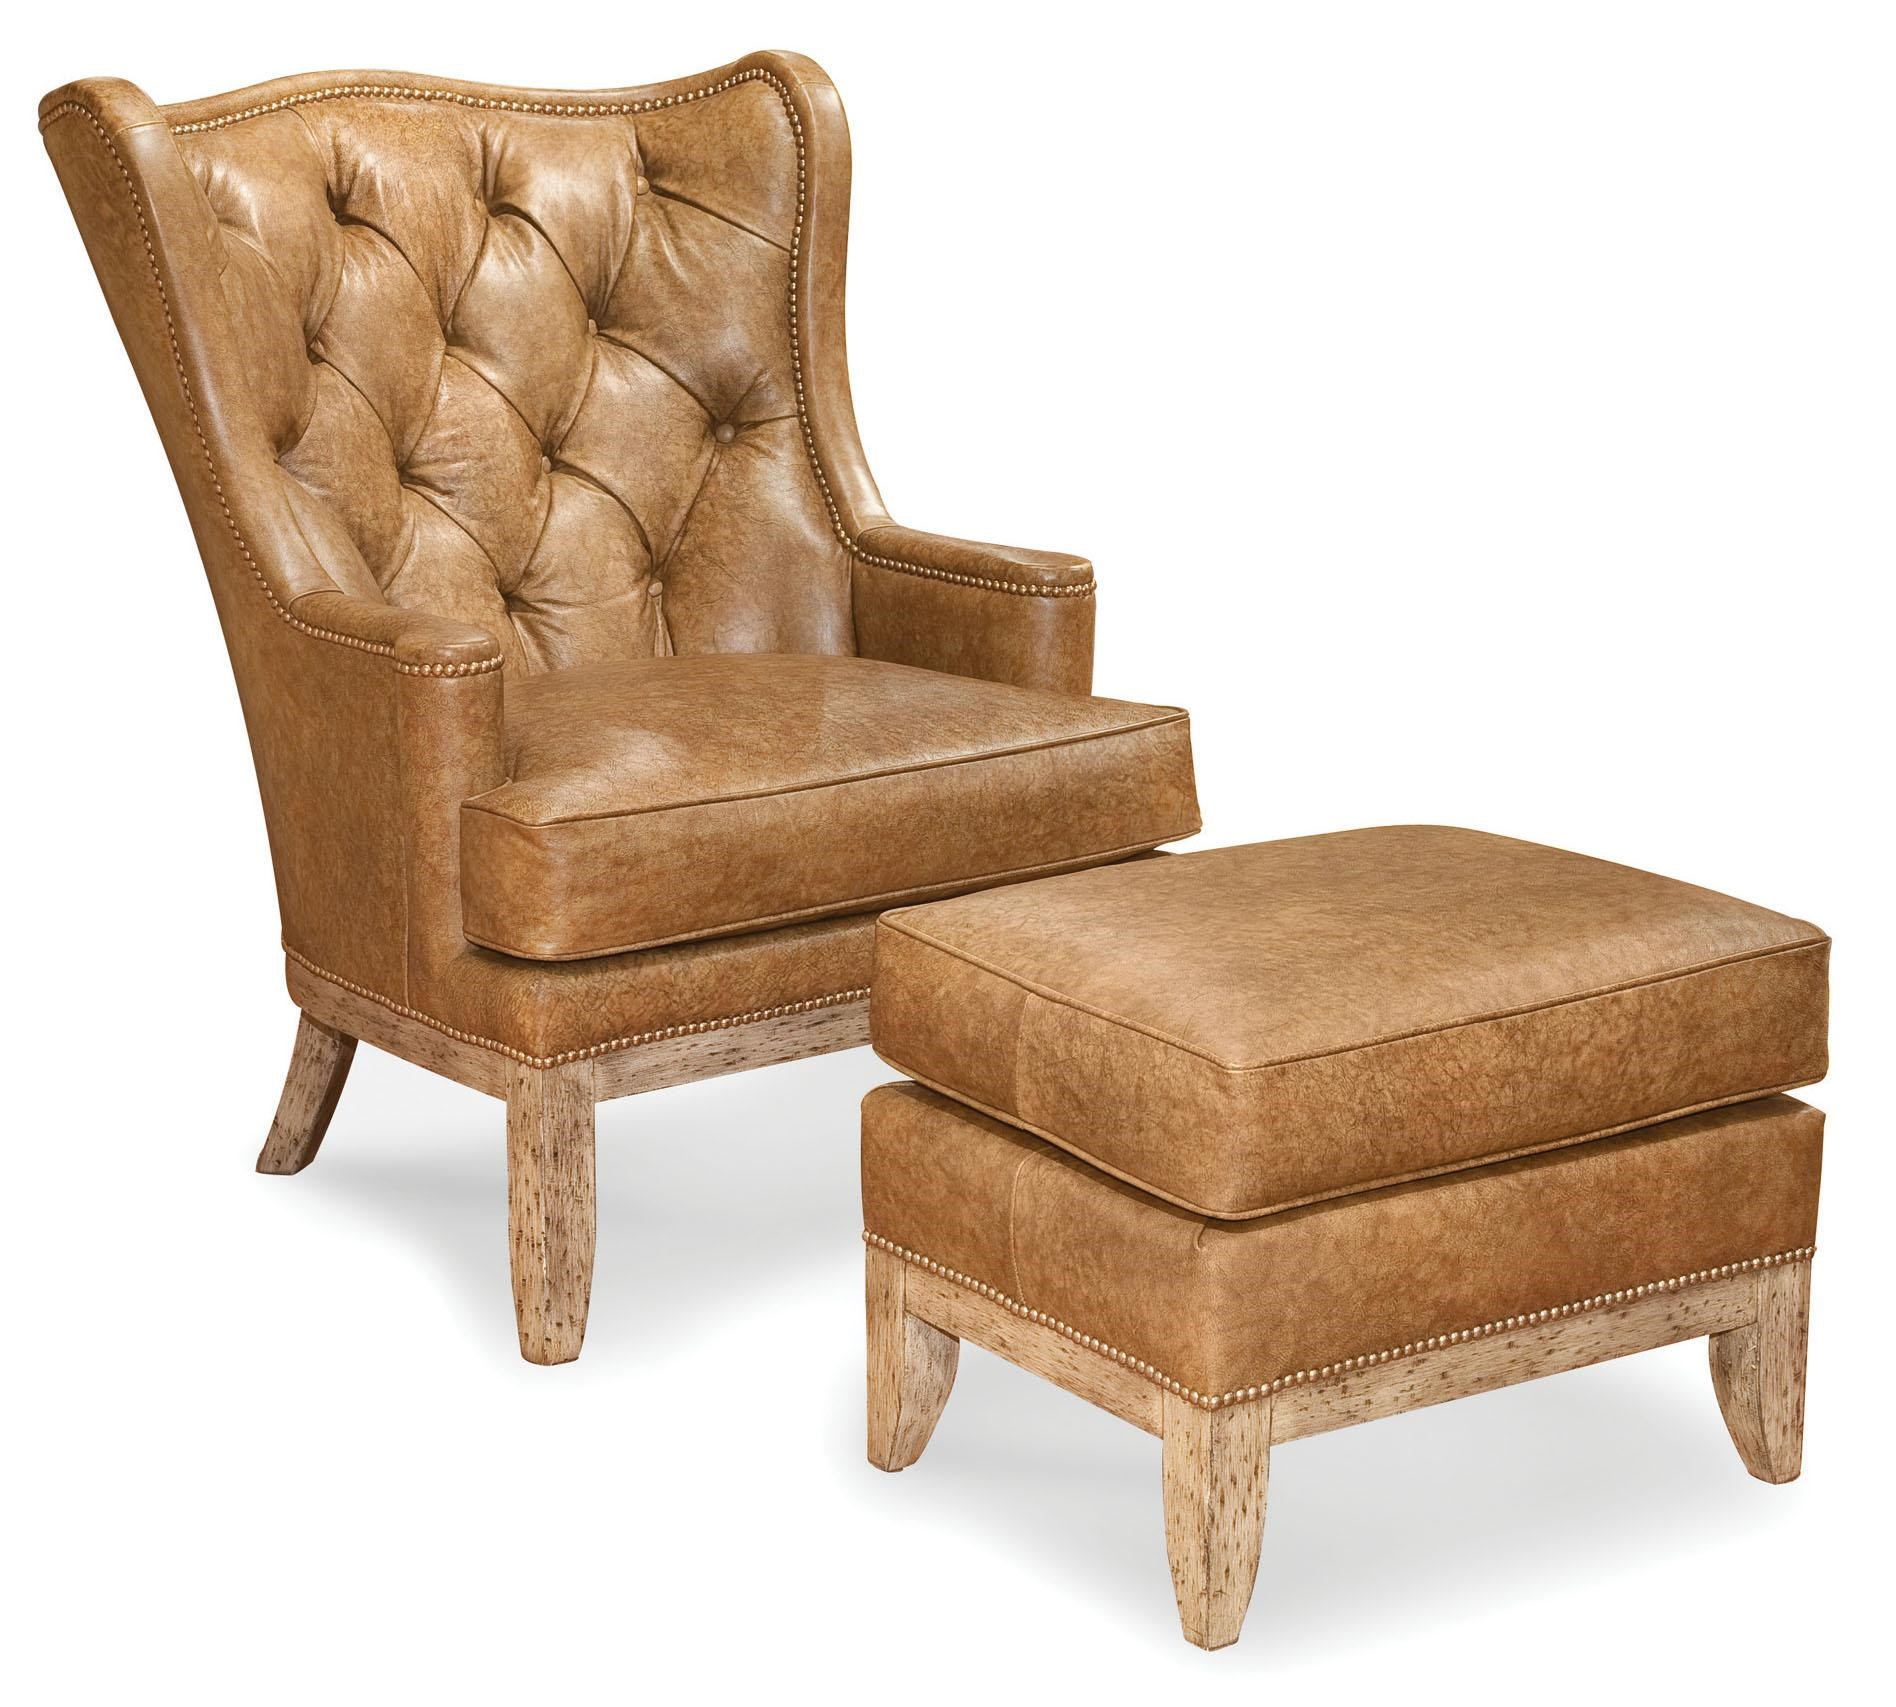 Fairfield Chairs Fairfield Chairs Wing Chair And Ottoman Combination Wayside